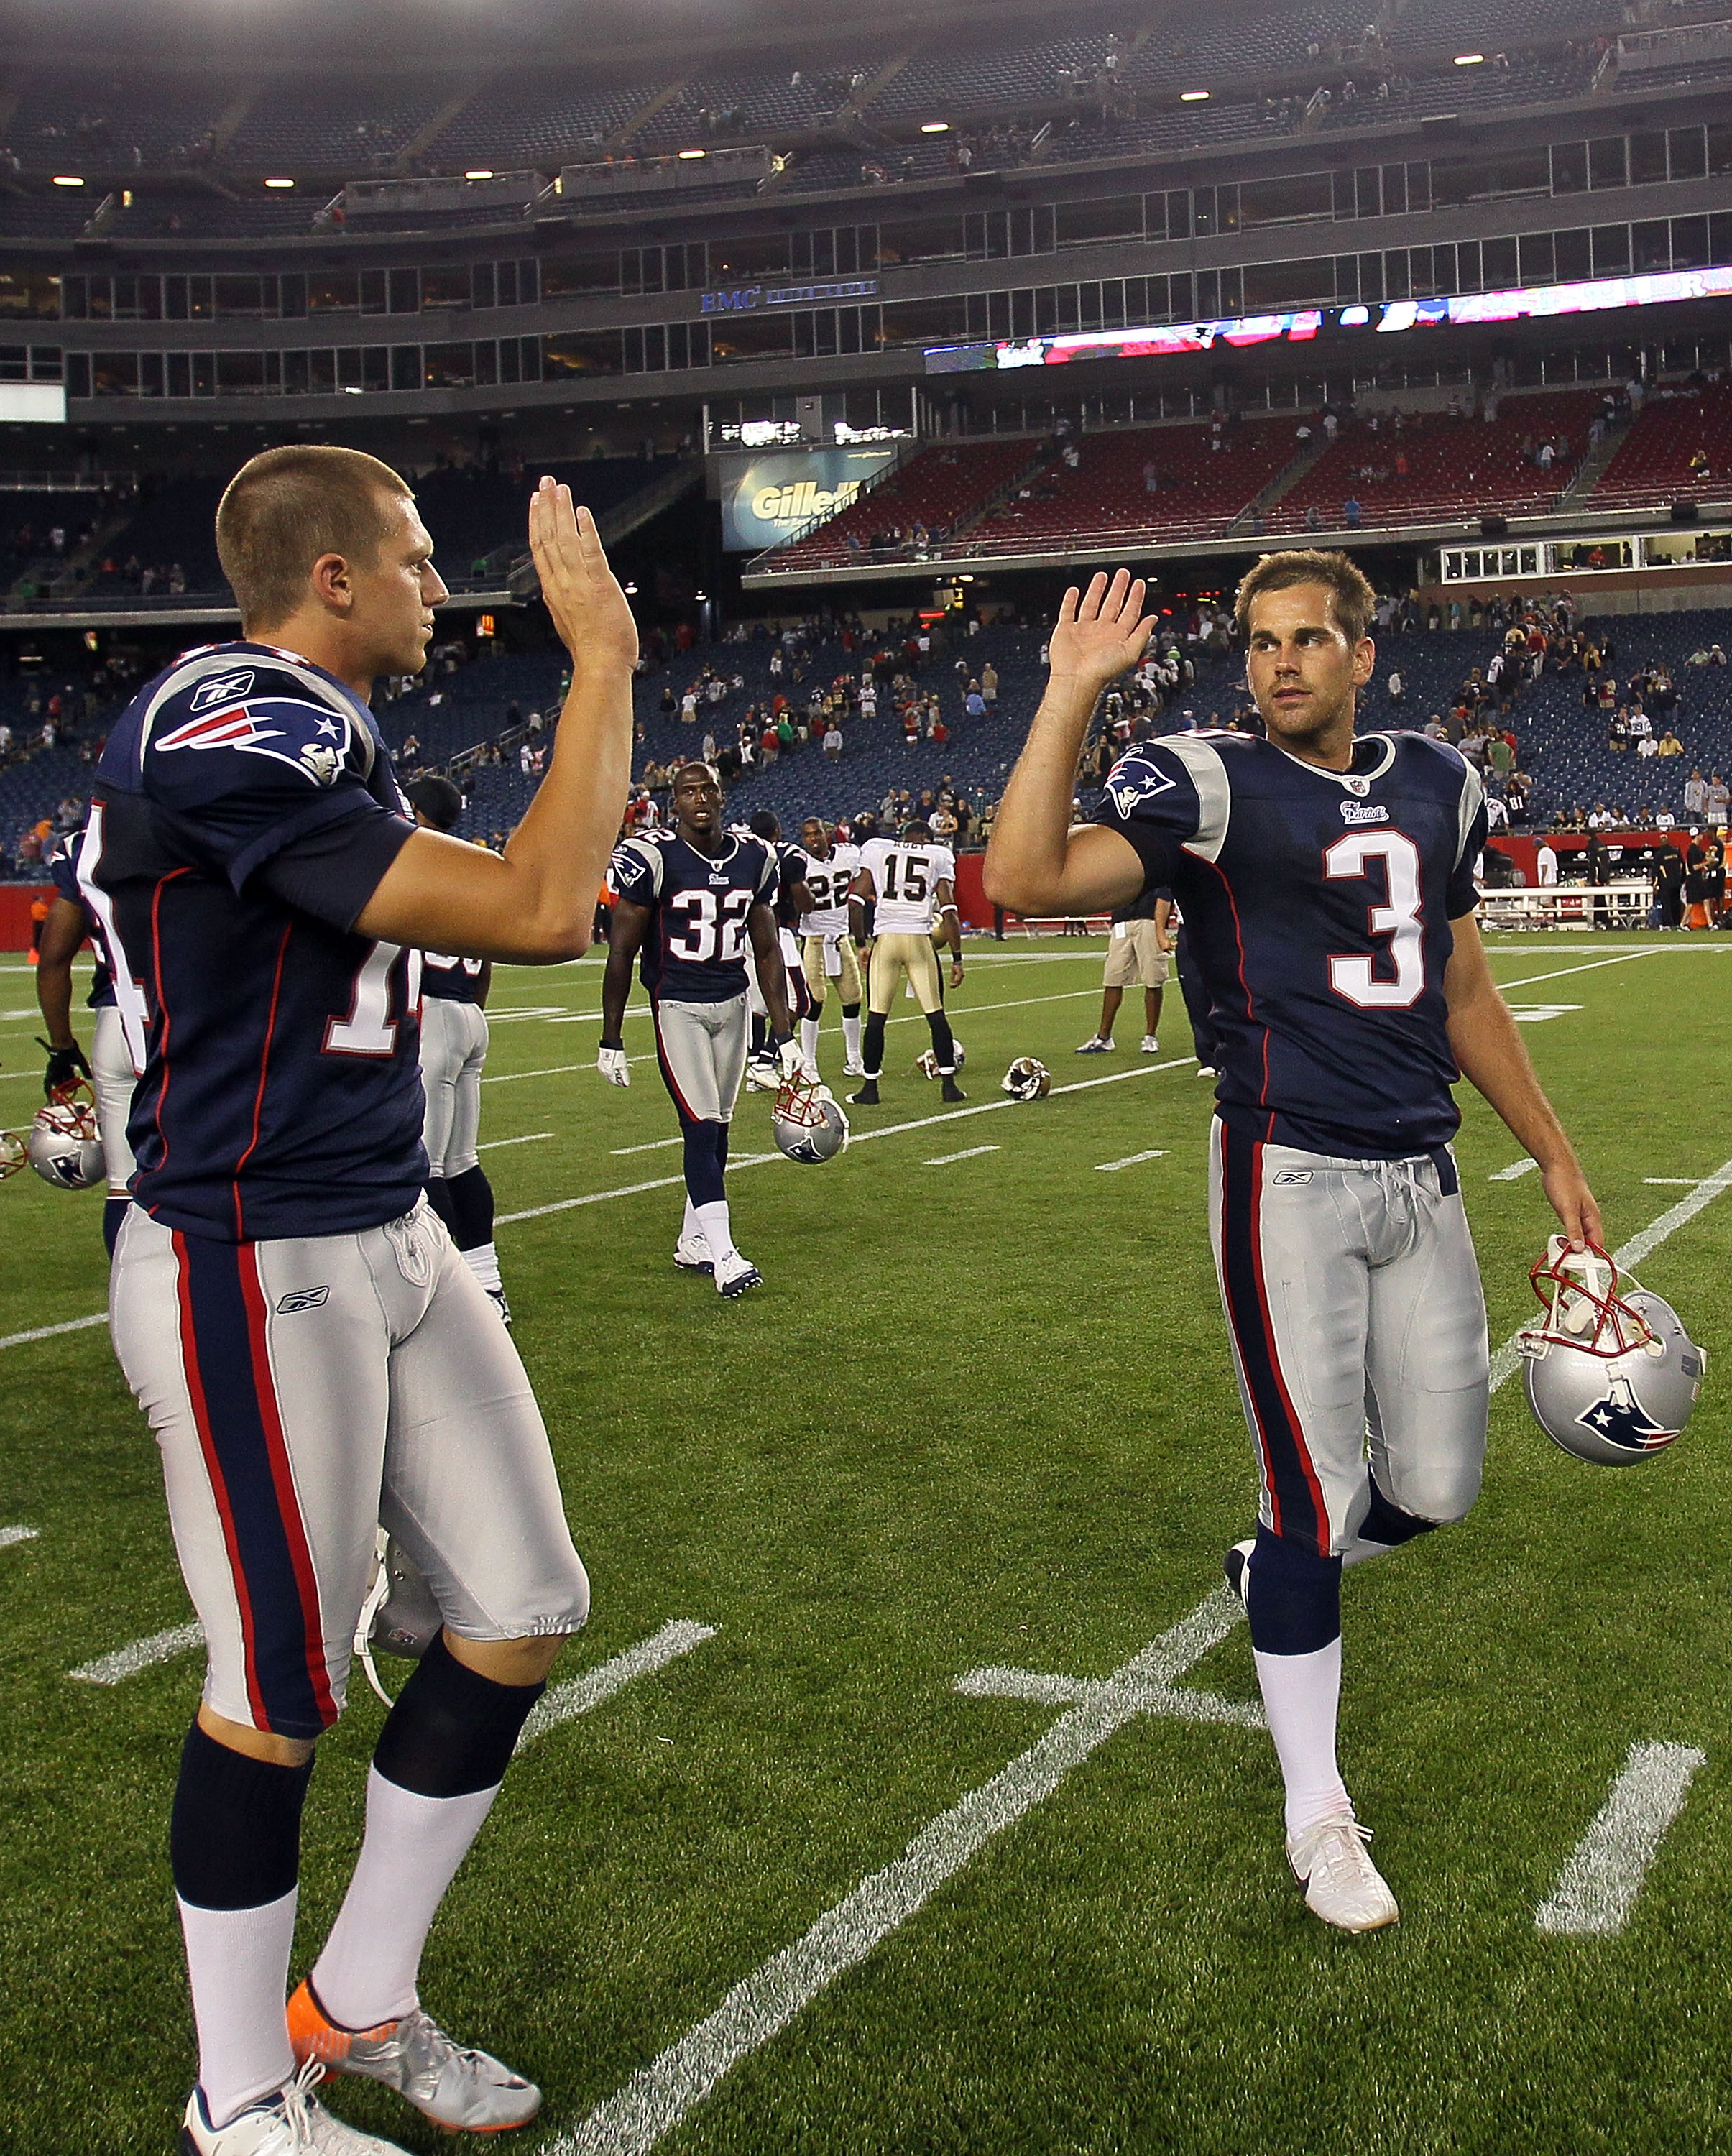 FOXBORO, MA - AUGUST 12: Zoltan Mesko # 14 and Stephen Gostkowski # 3 of the New England Patriots celebrate their 27 - 24 win over the New Orleans Saints at the end of a preseason game at Gillette Stadium on August 12, 2010 in Foxboro, Massachusetts. (Pho